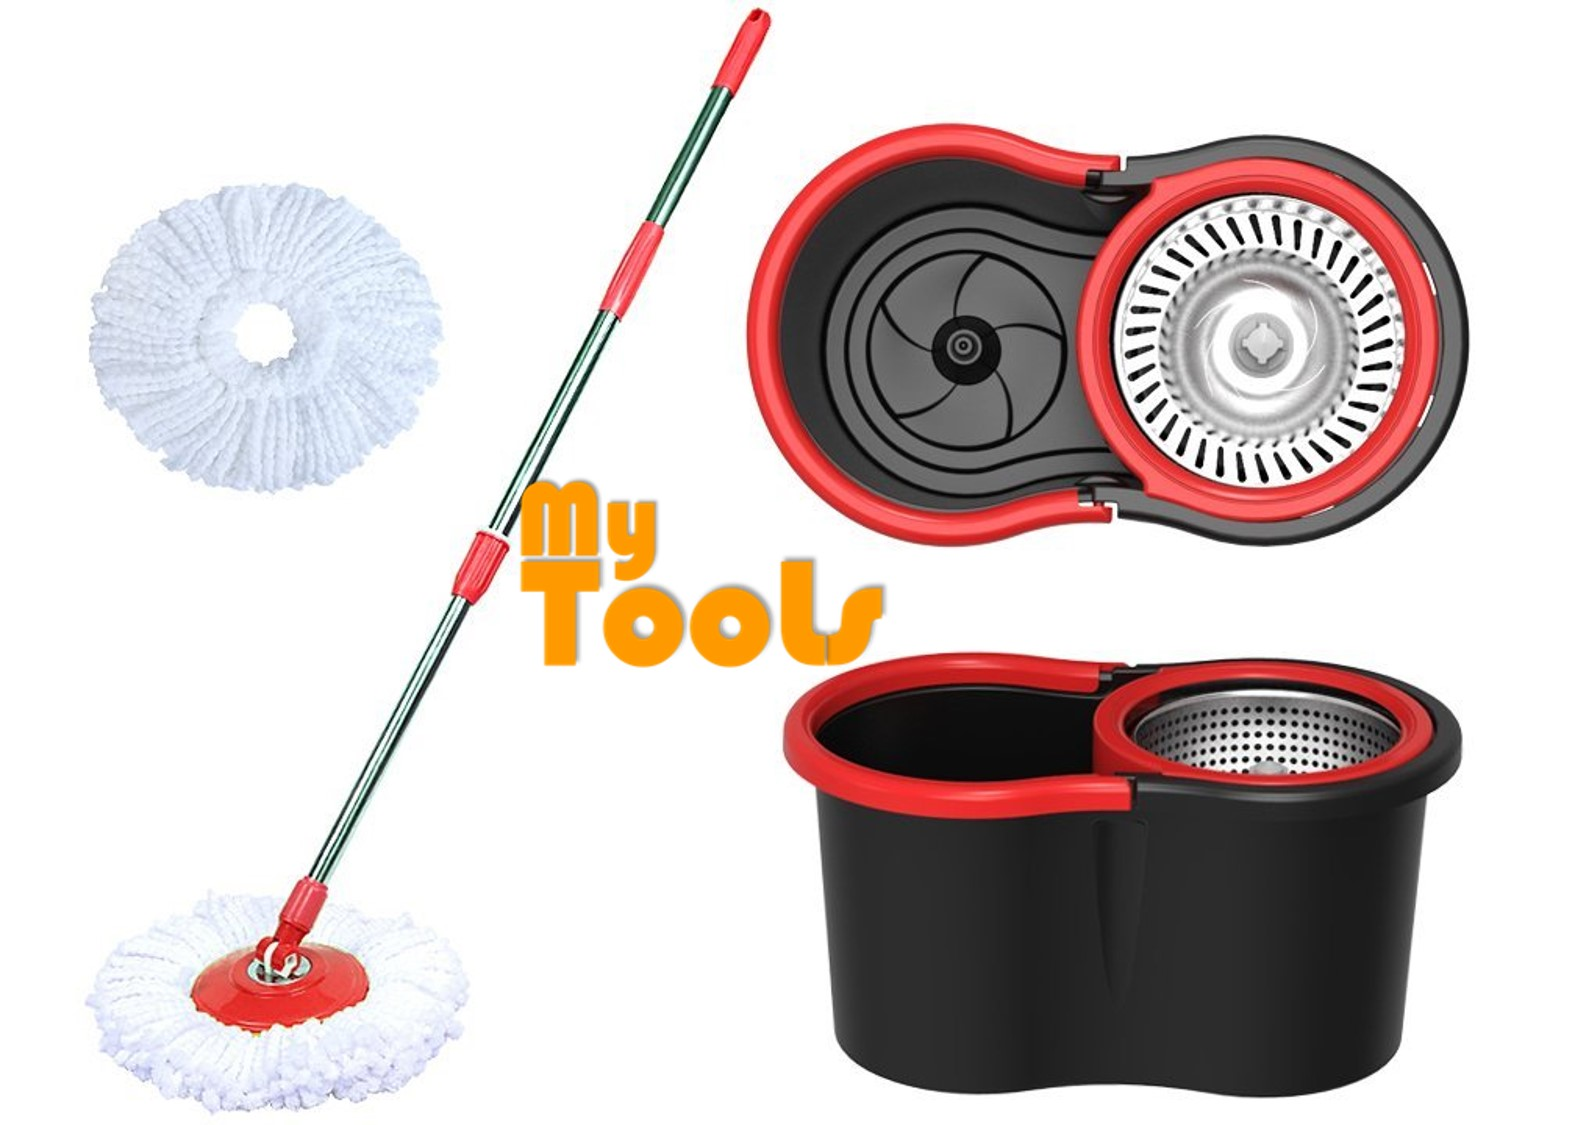 Mytools Super Spin mop Stainless Steel Basket + 2 Mop Heads